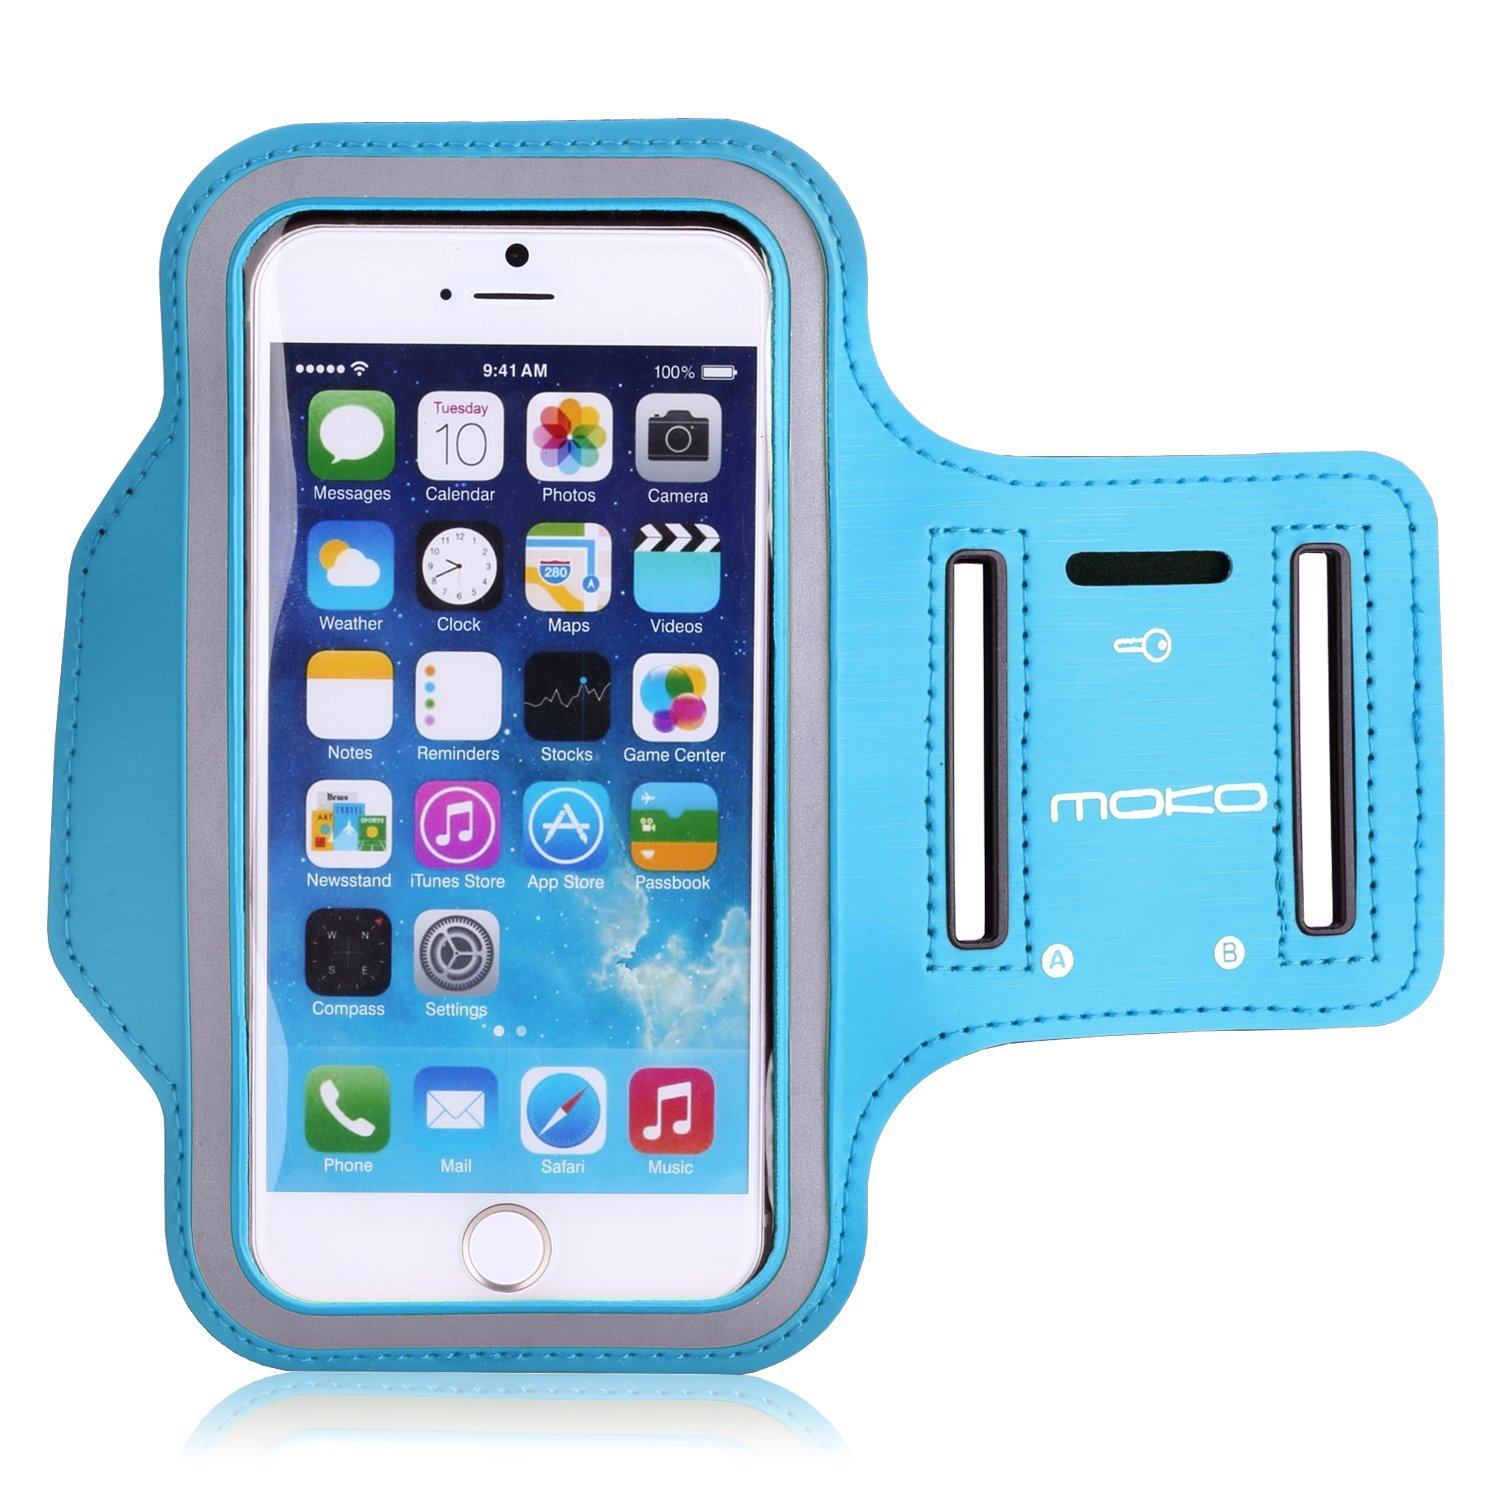 iPhone 6s / iPhone 6 Armband, MoKo Sweatproof Sports Running Armband Workout Arm Band Cover for iPhone 6S, 6, 5S, 5, Galaxy S7, Moto G, BLU 5.0, White (Fits Arm Girth 10.8-16.5)